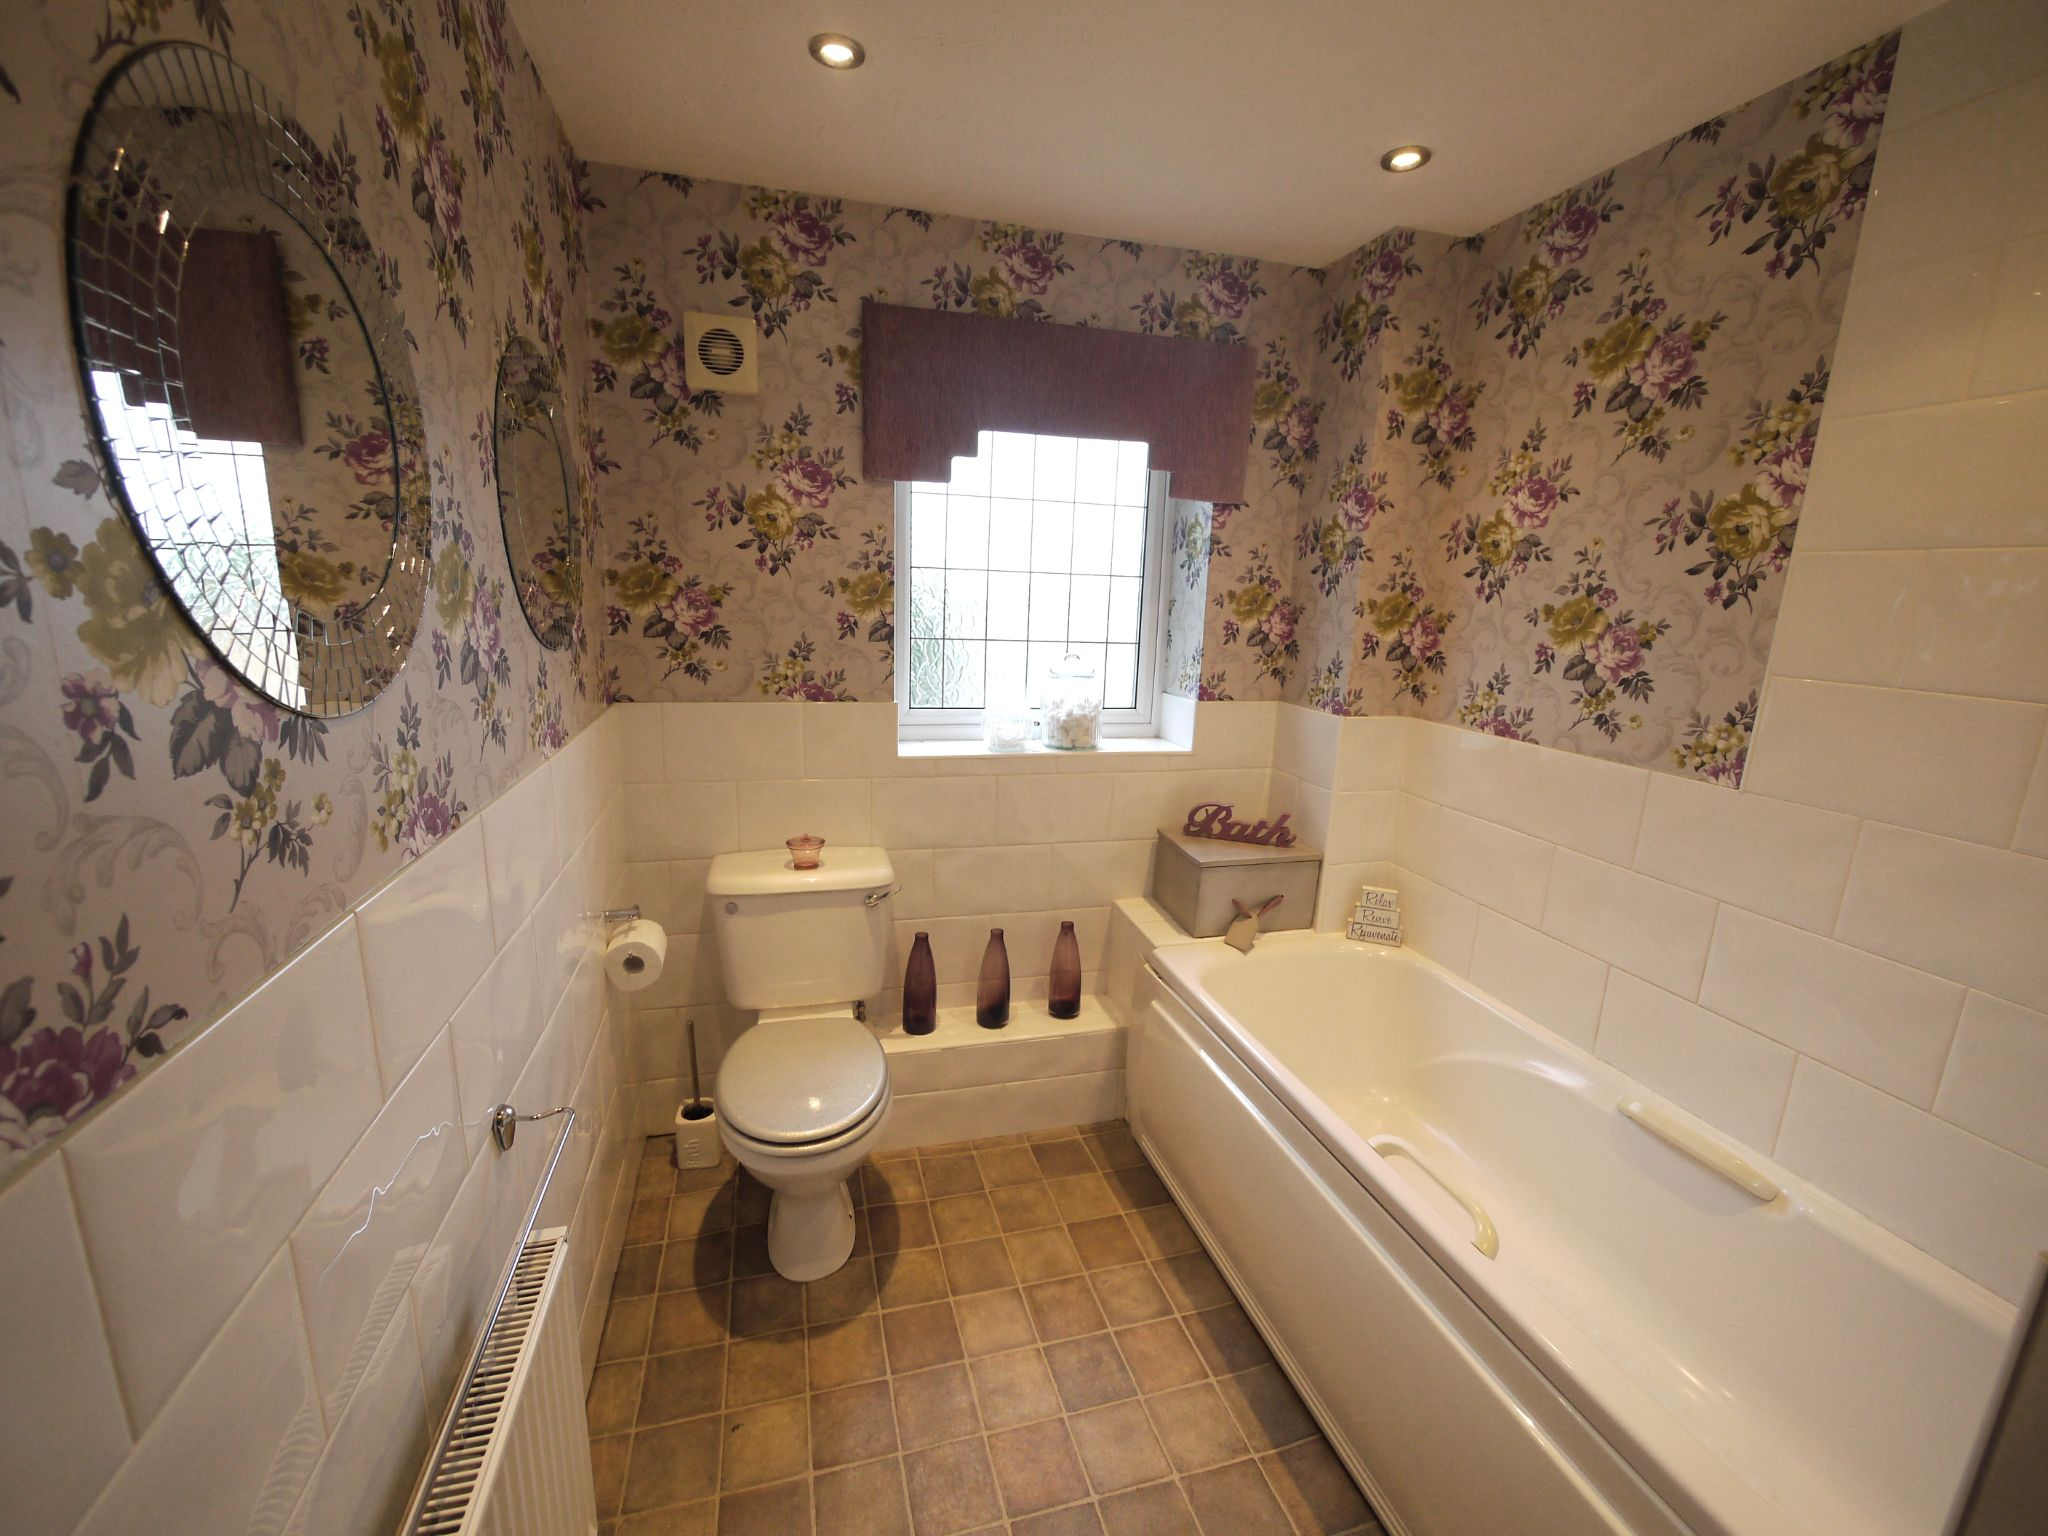 4 bedroom town house For Sale in Brighouse - Bathroom.